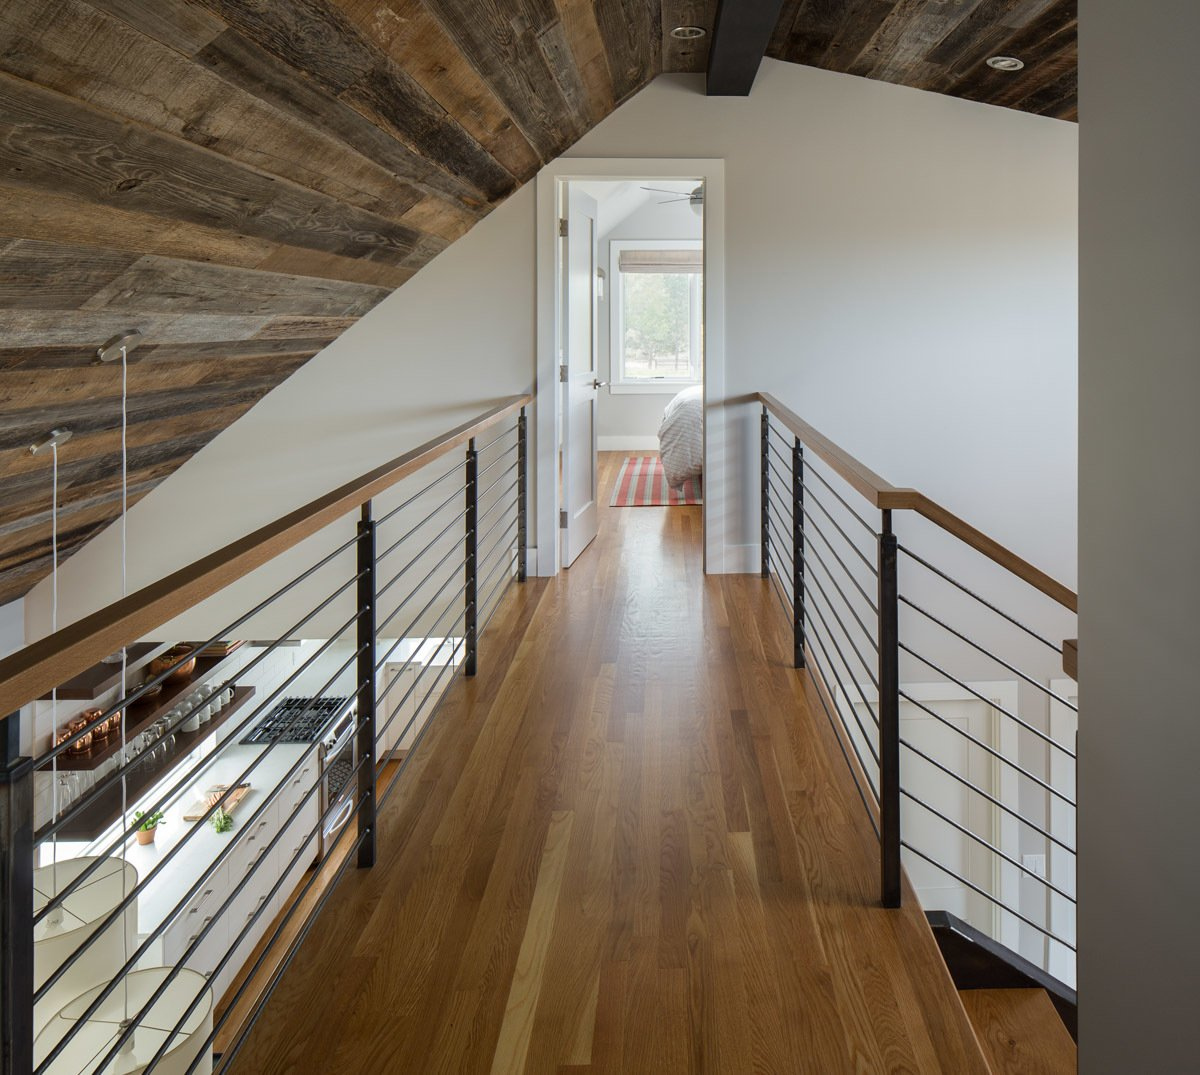 Image of: Photo 7 Of 9 In Modern Barn By Hmhai Dwell